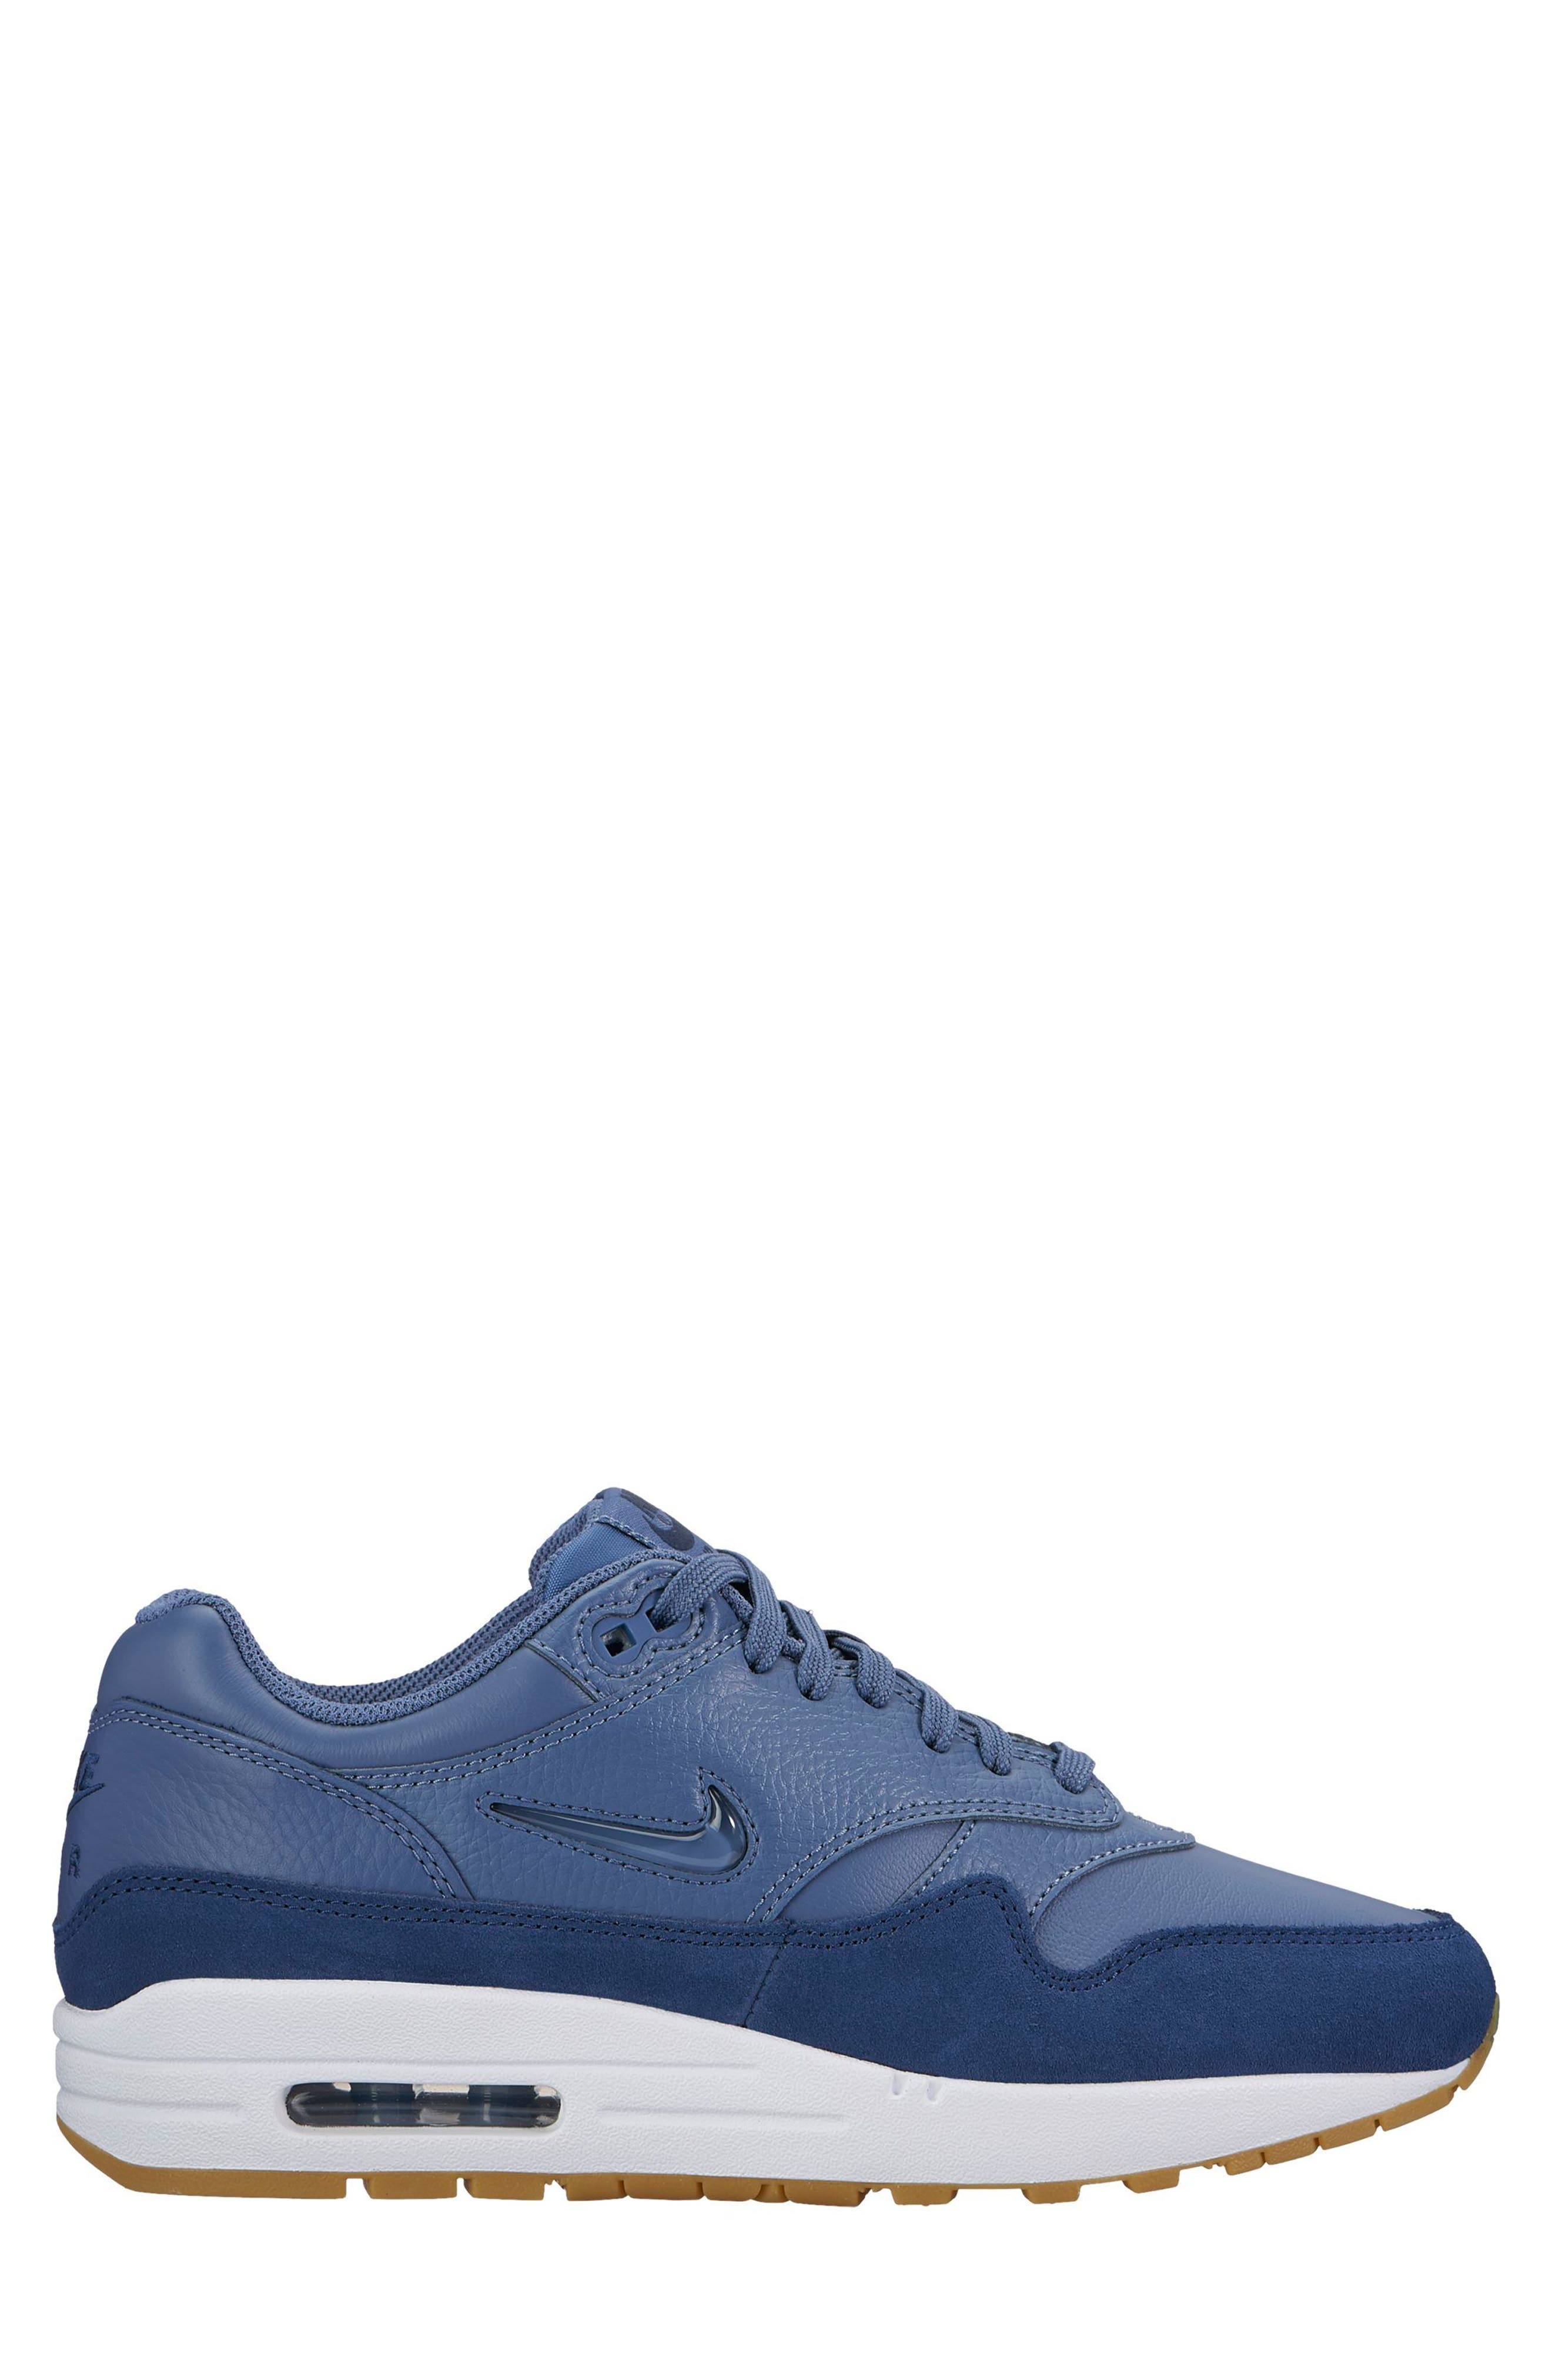 Air Max 1 Premium SC Sneaker,                             Main thumbnail 1, color,                             Diffused Blue/ Diffused Blue